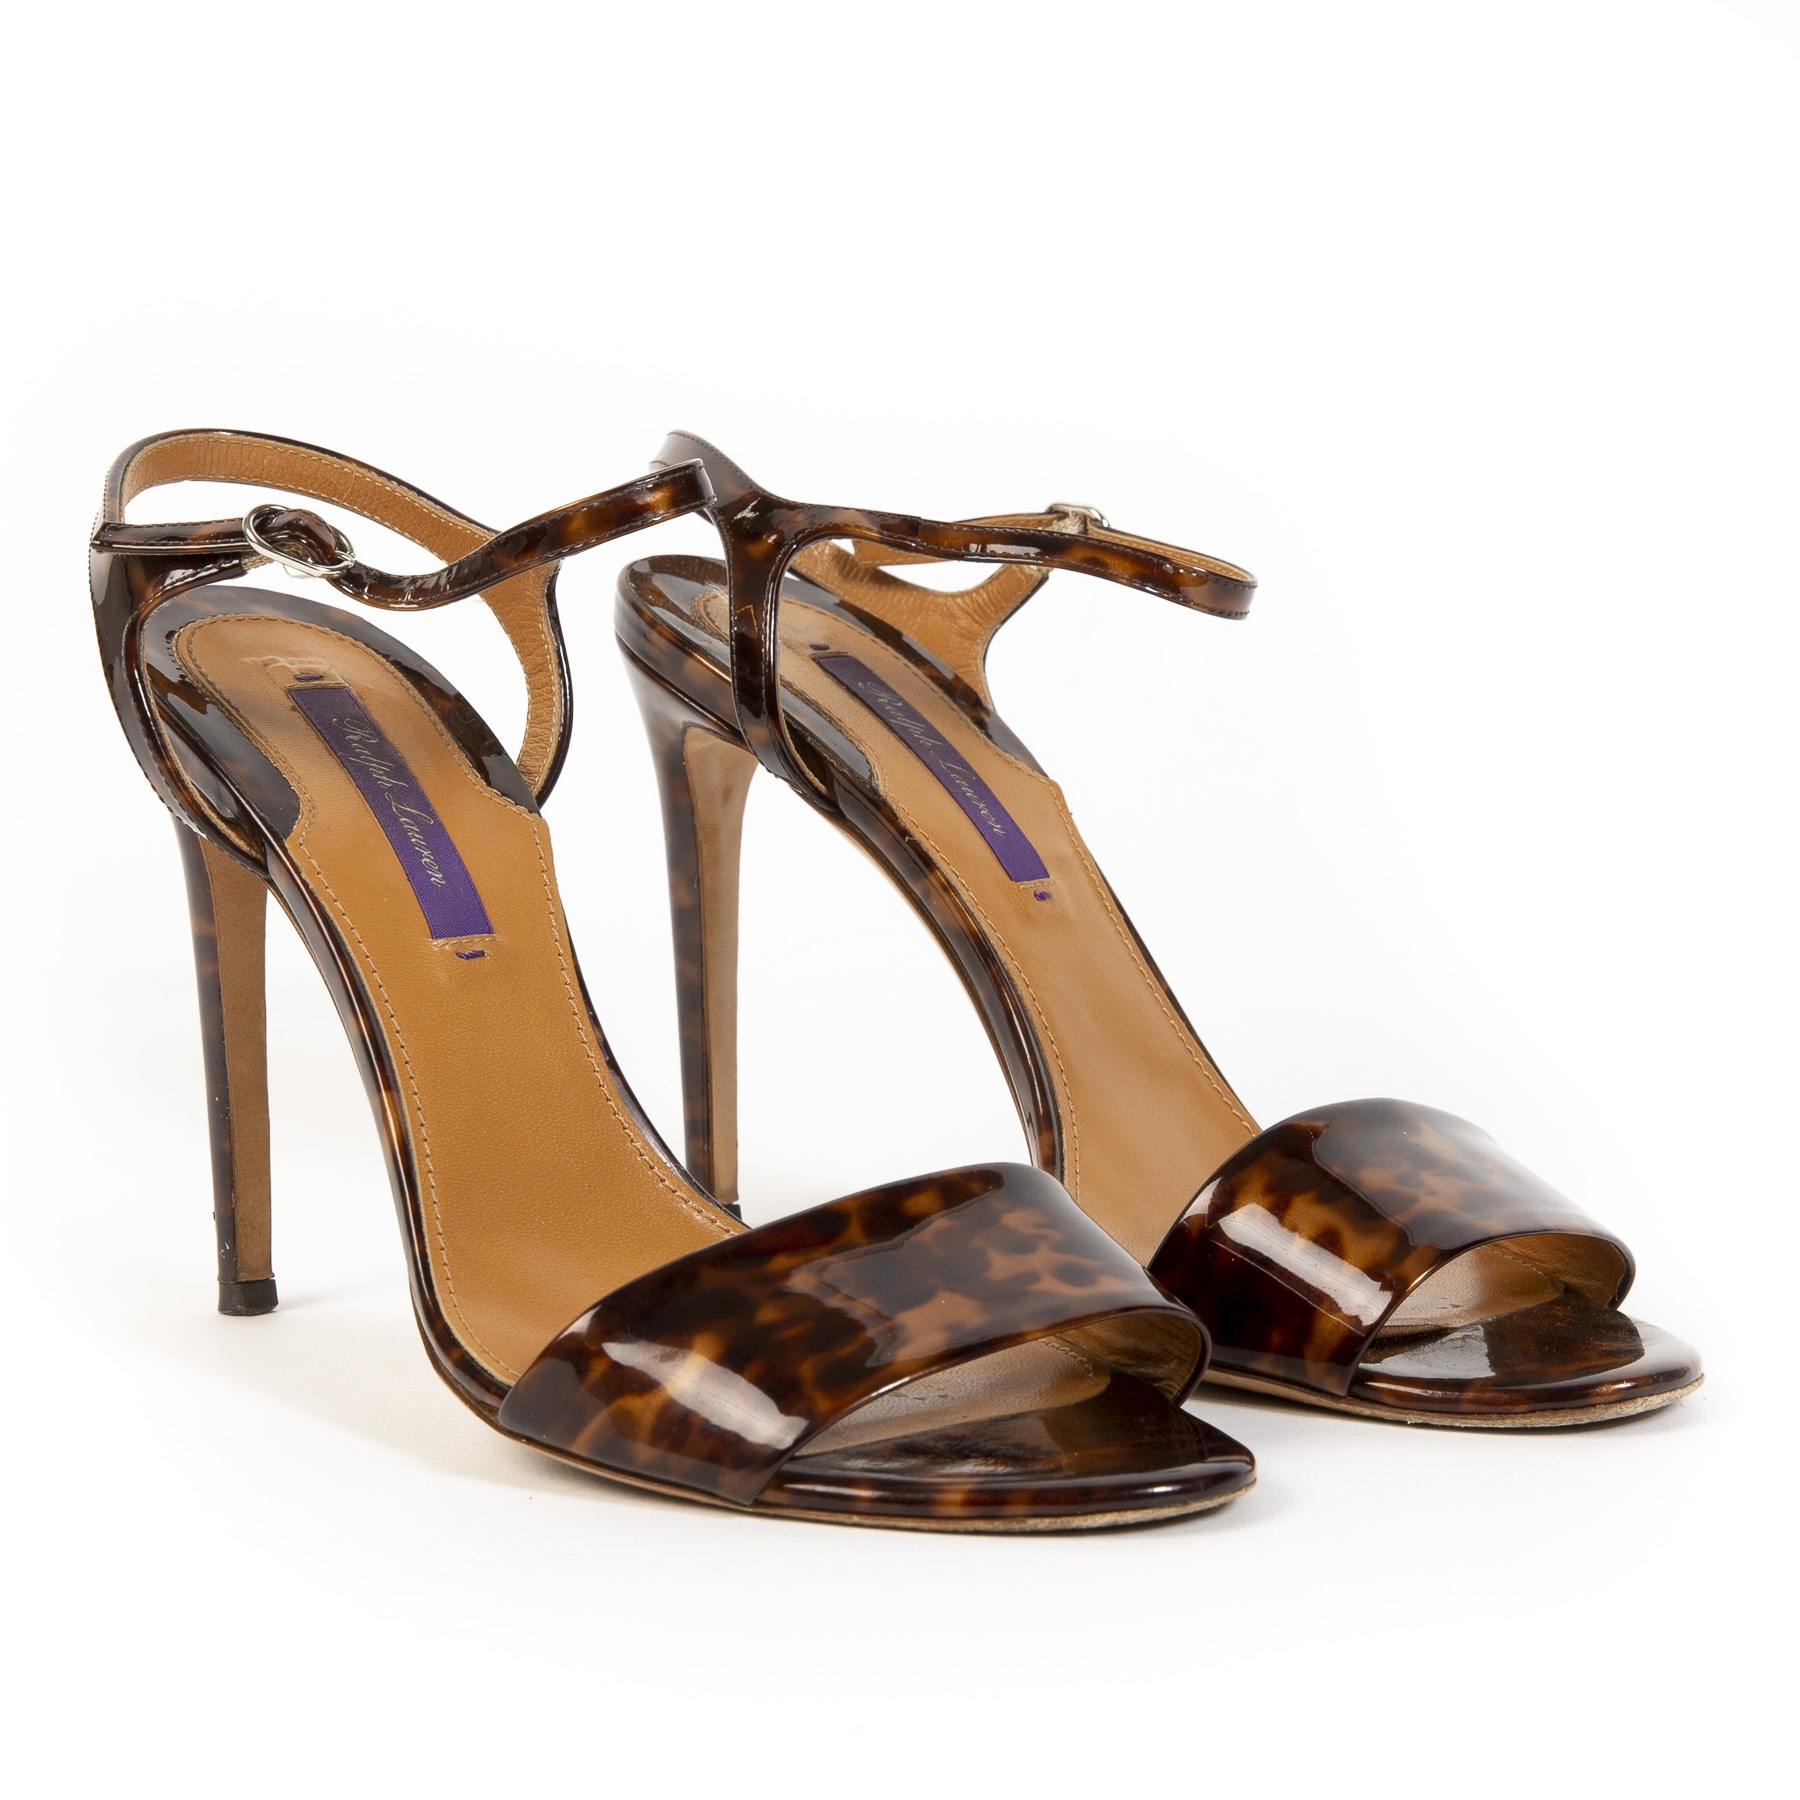 Buy authentic secondhand ralph lauren heels at labellov antwerp.